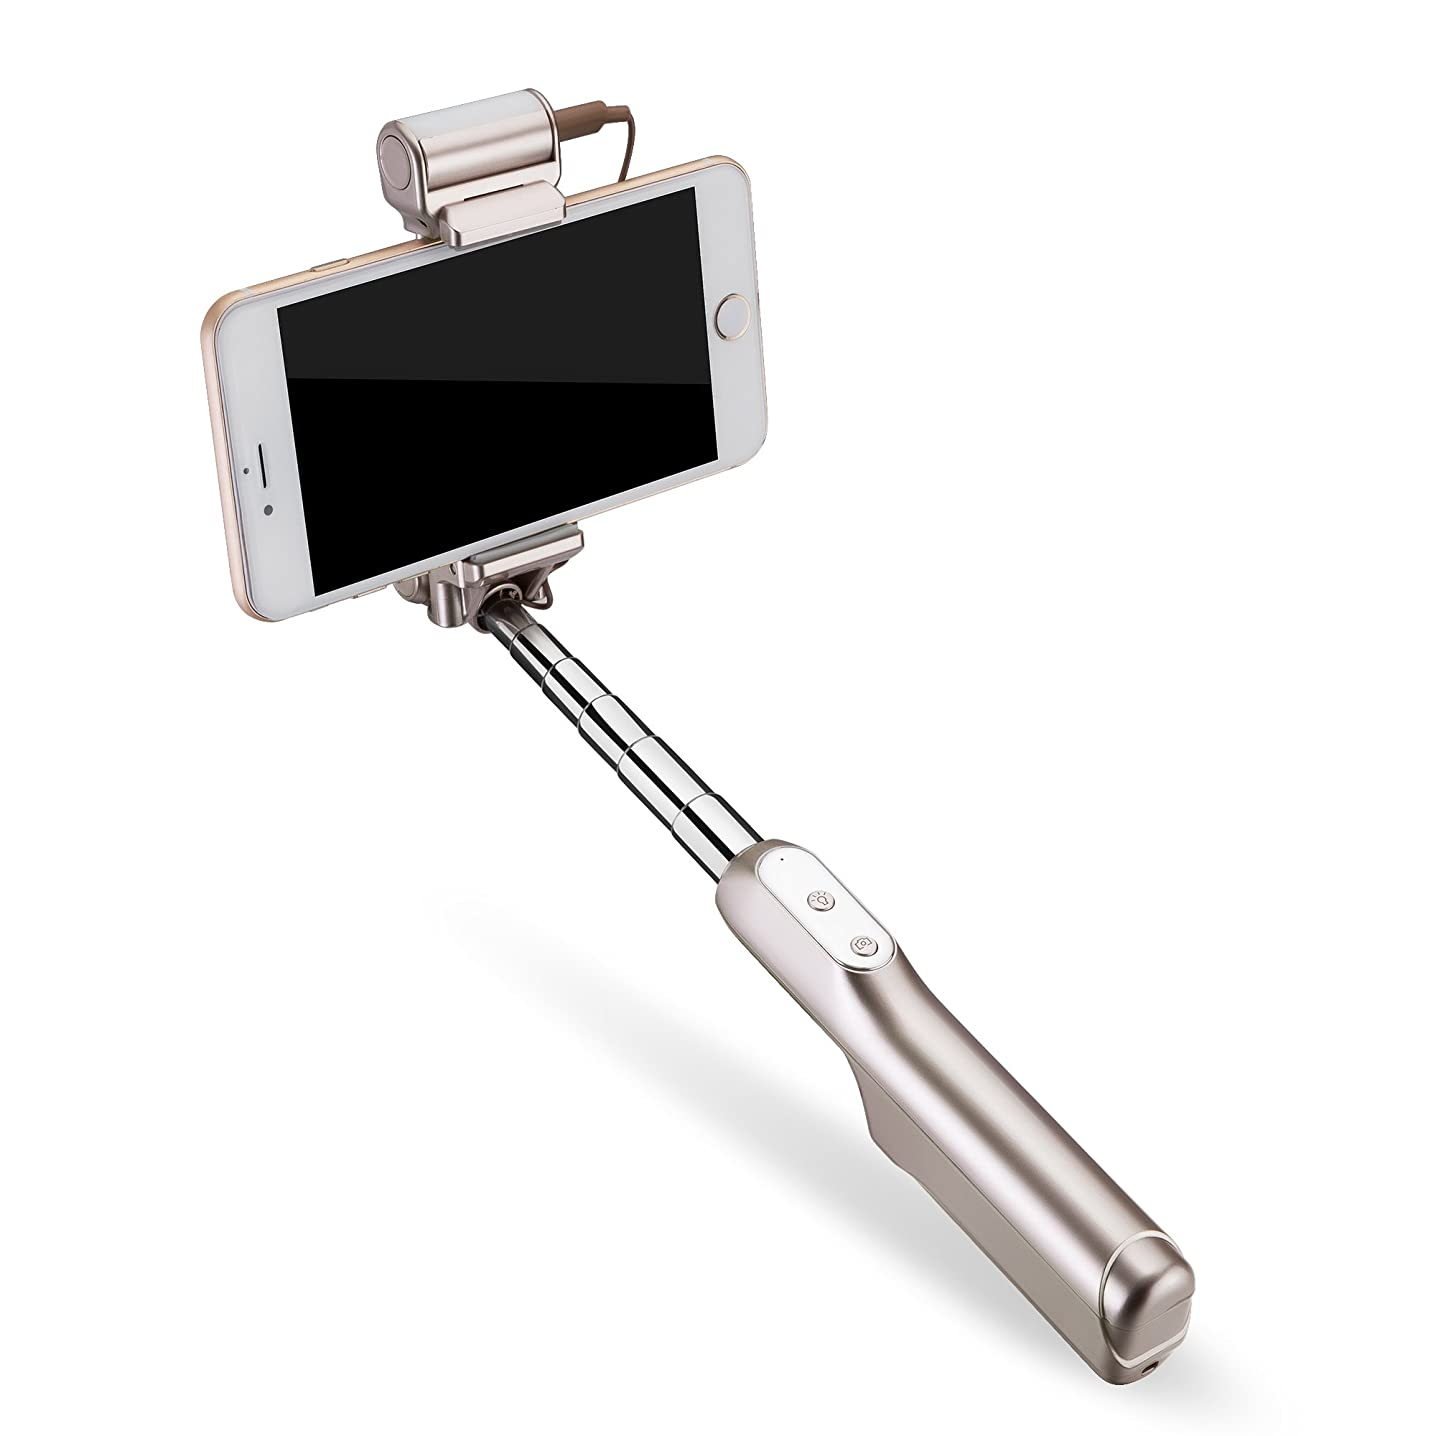 Selfie Stick, LEXSTRA bluetooth selfie stick with 360 degree soft LED light and mirror for iphone 8-4 iphone X and android